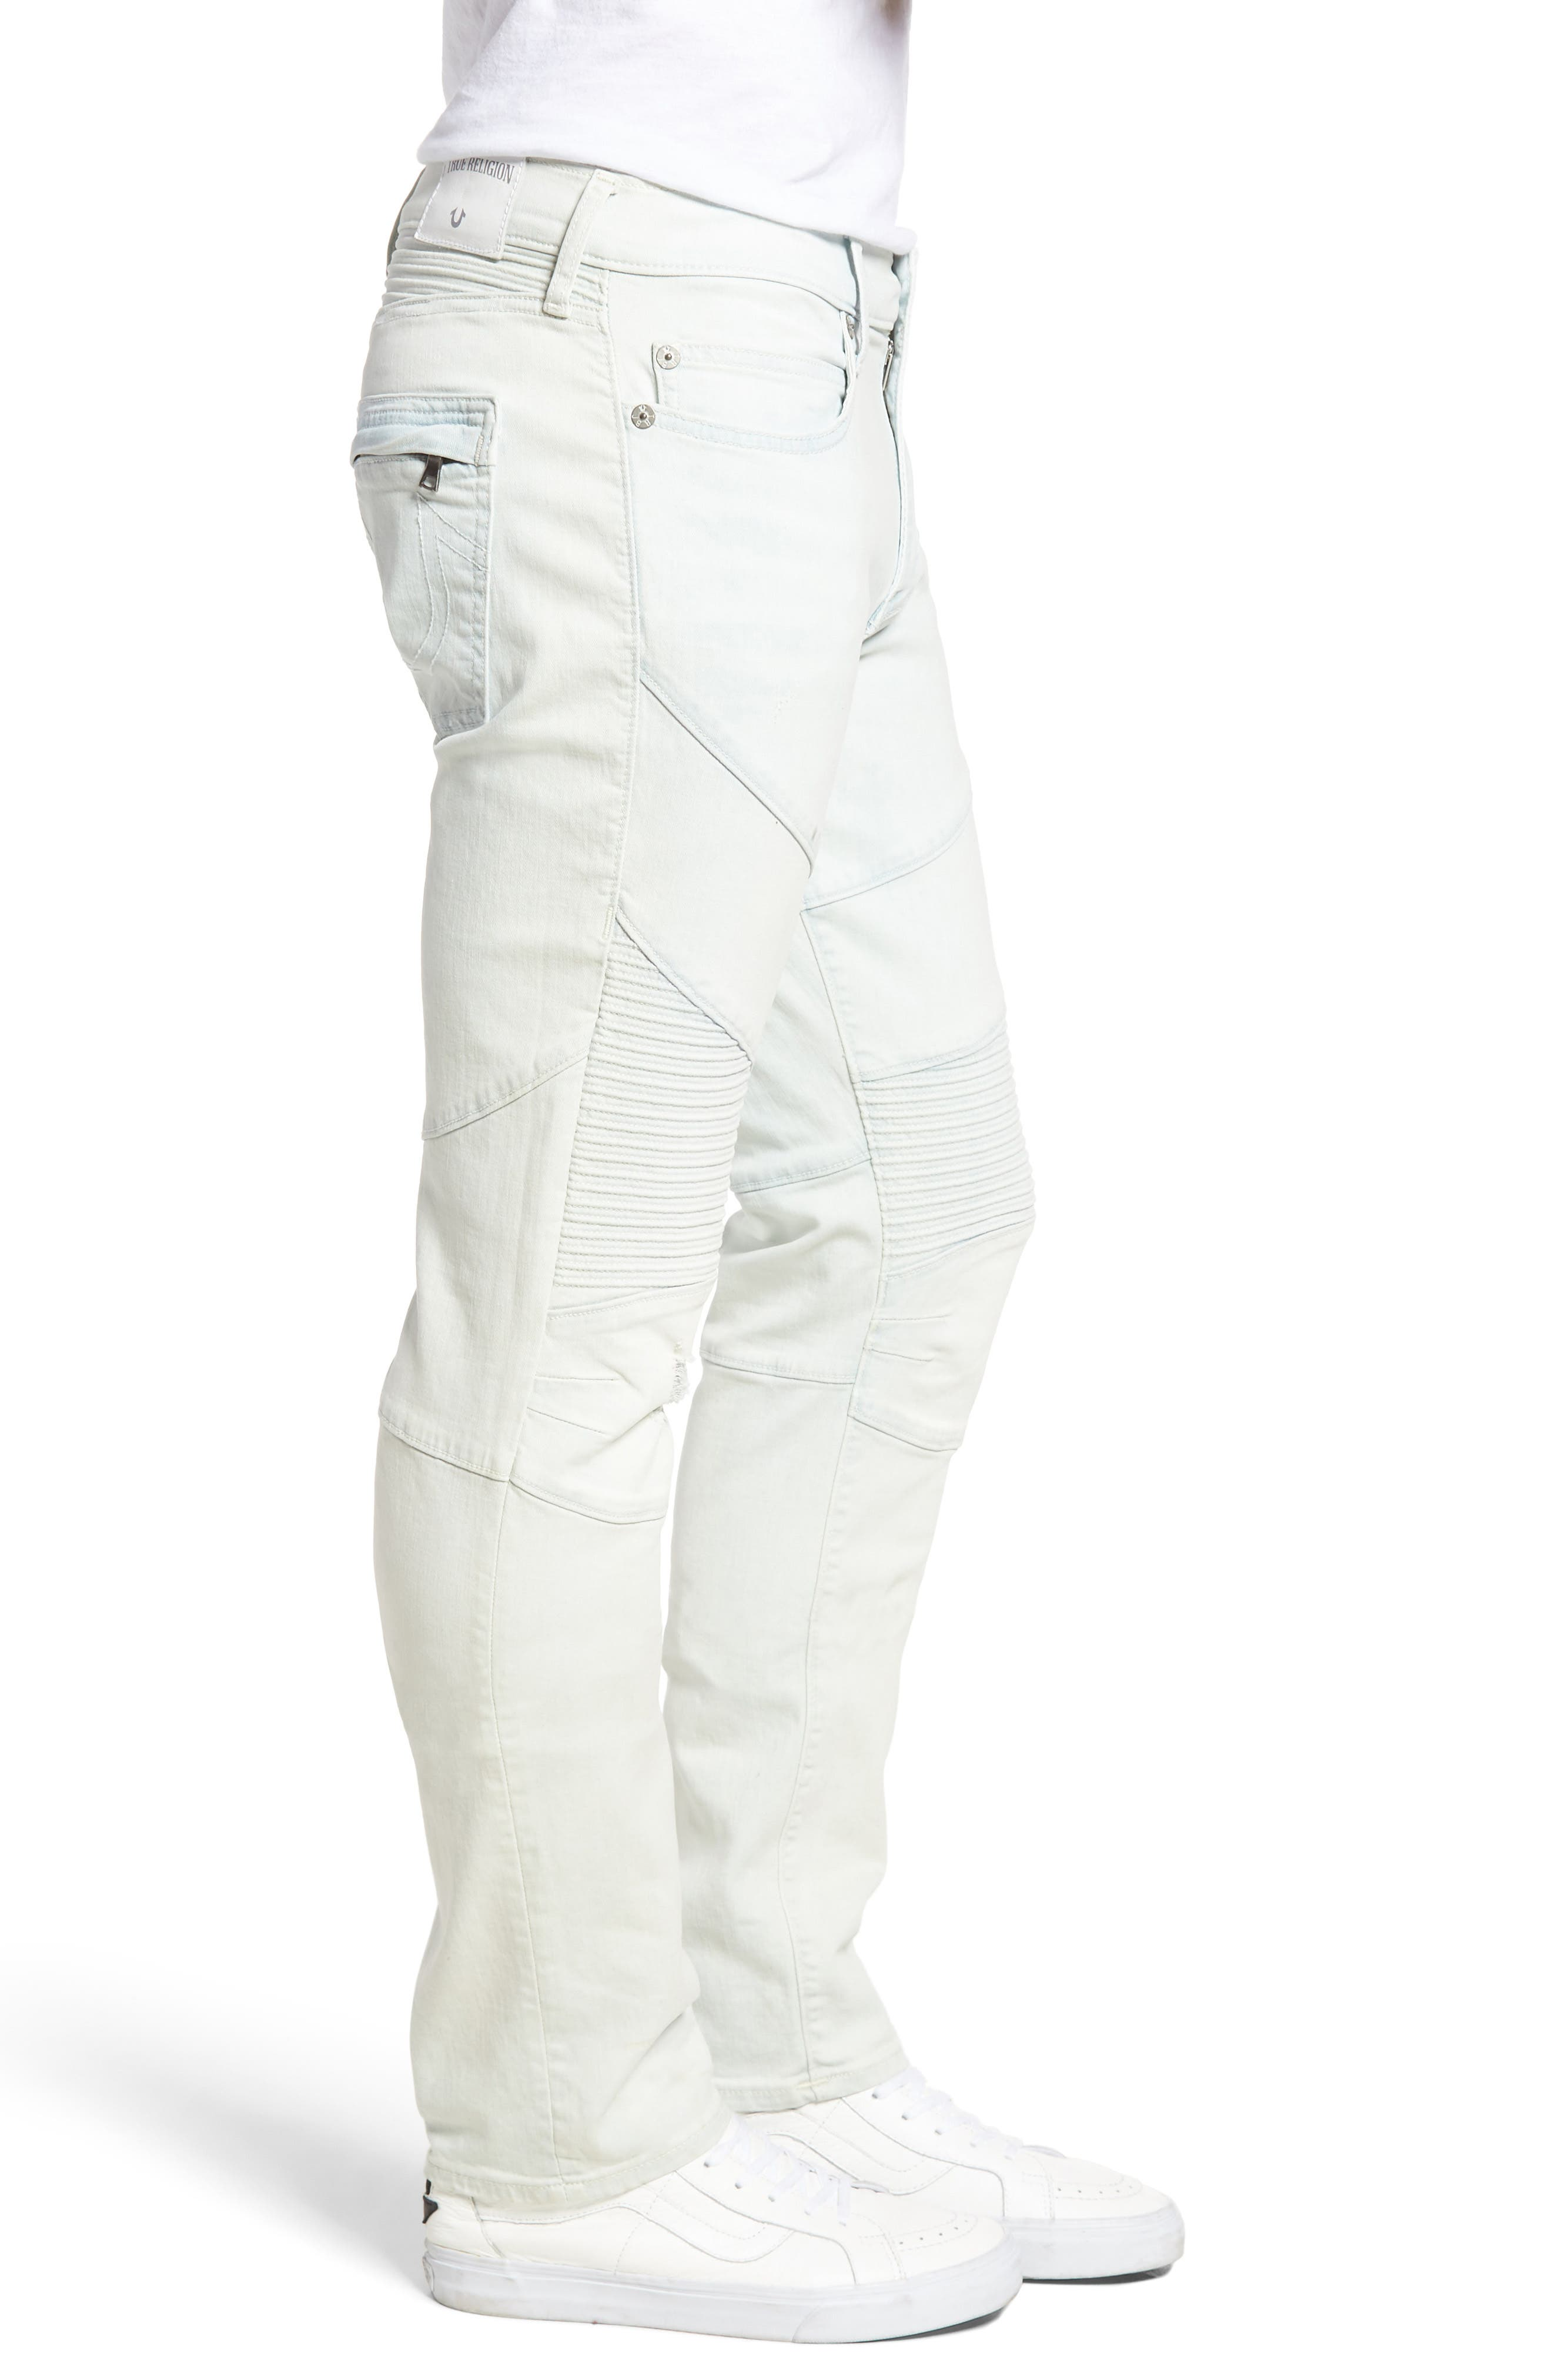 Rocco Skinny Fit Moto Jeans,                             Alternate thumbnail 3, color,                             401